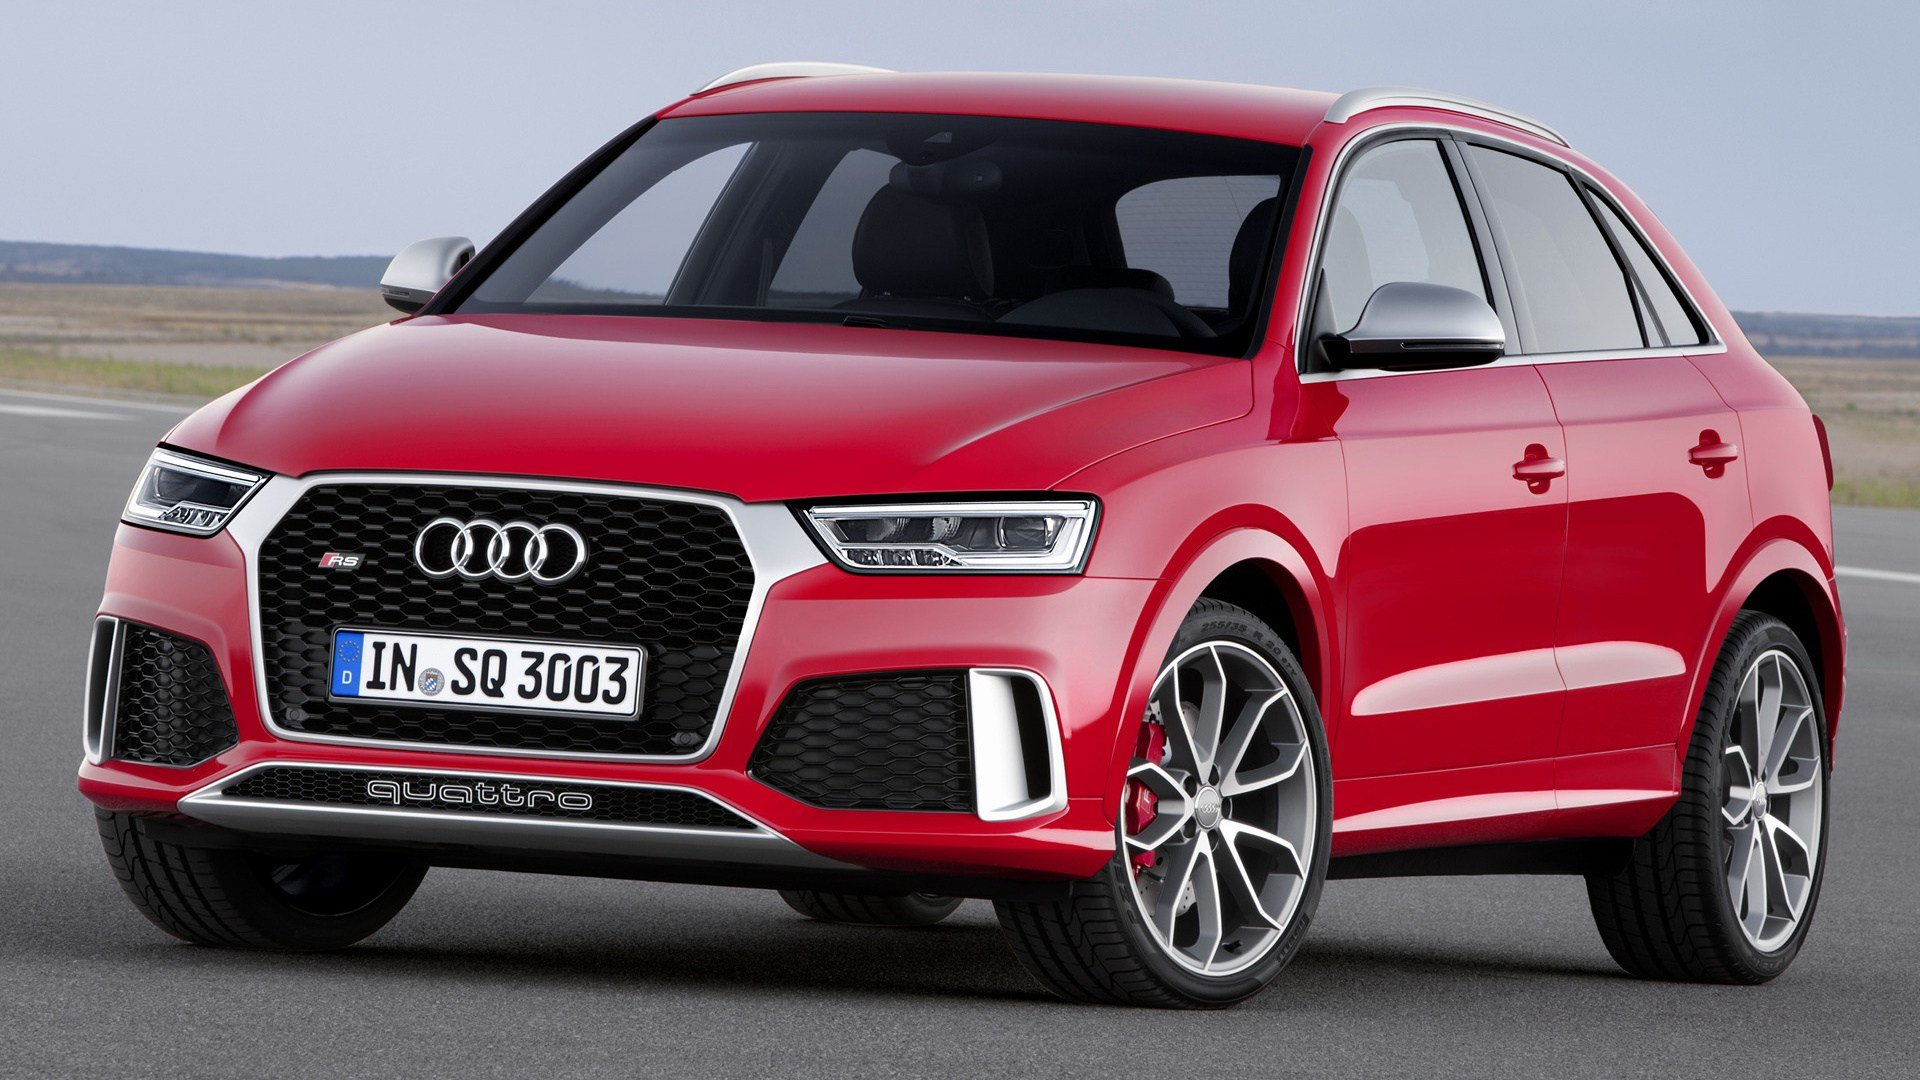 Latest Audi Rs Q3 2015 Wallpapers And Hd Images Car Pixel Free Download